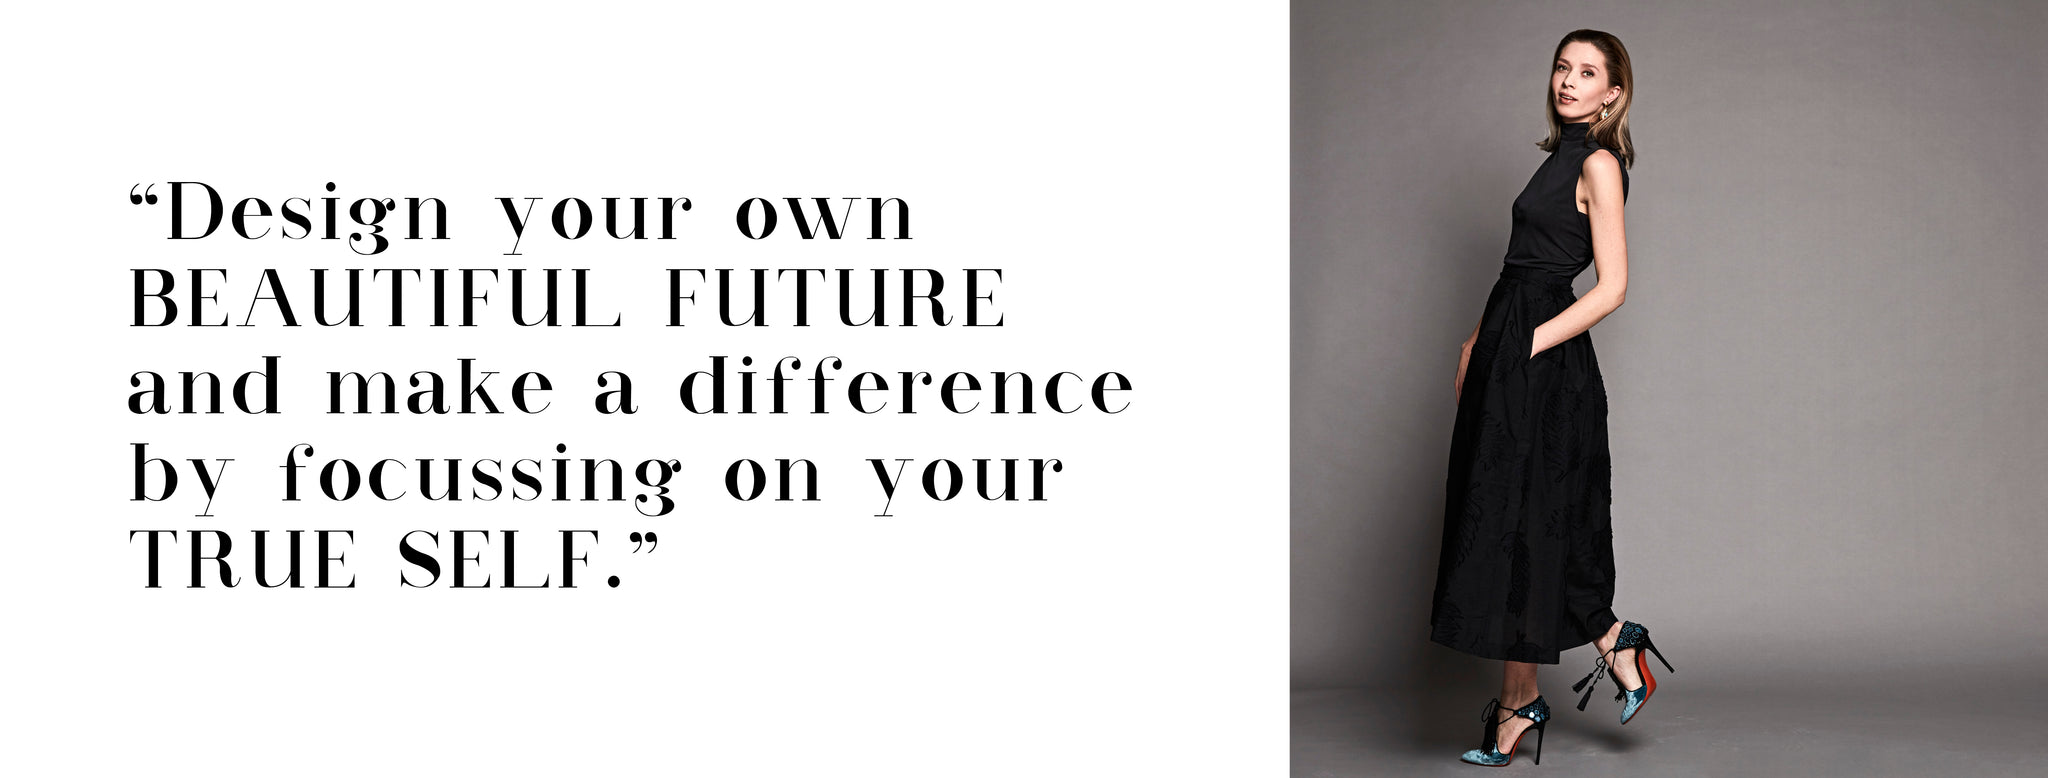 Design your own beautiful future and make a difference by focussing on your true self - Maaike Nieuwenhuis